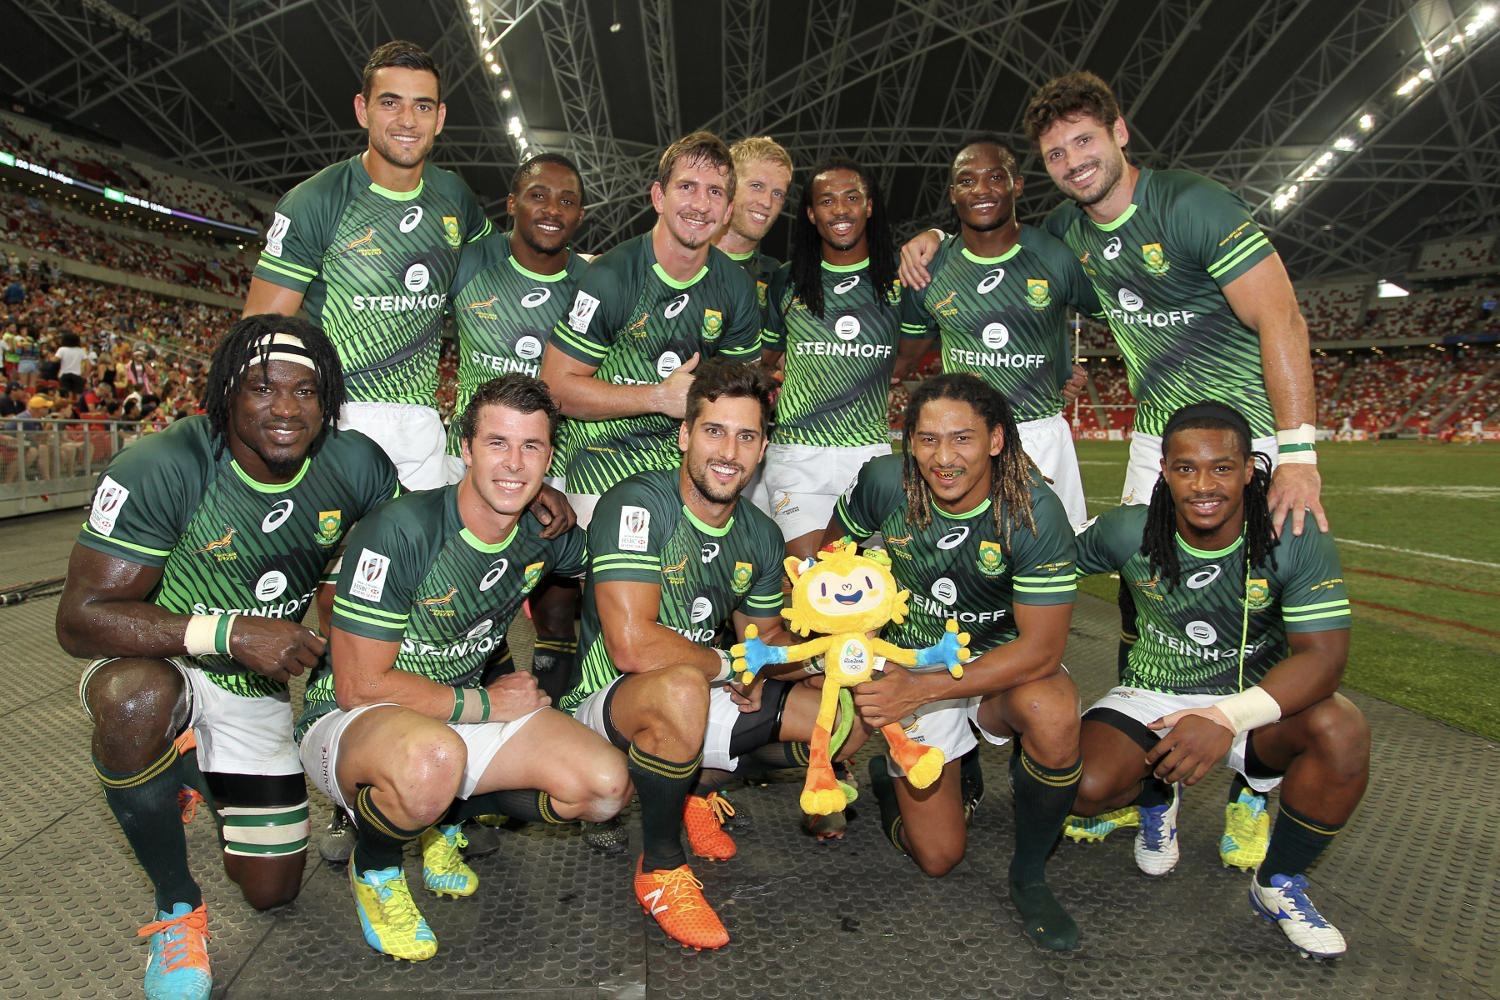 Blitzboks, Rugby, South Africa, Water, Water crisis, Cape Town, Sevens, Newsfeeds,News,